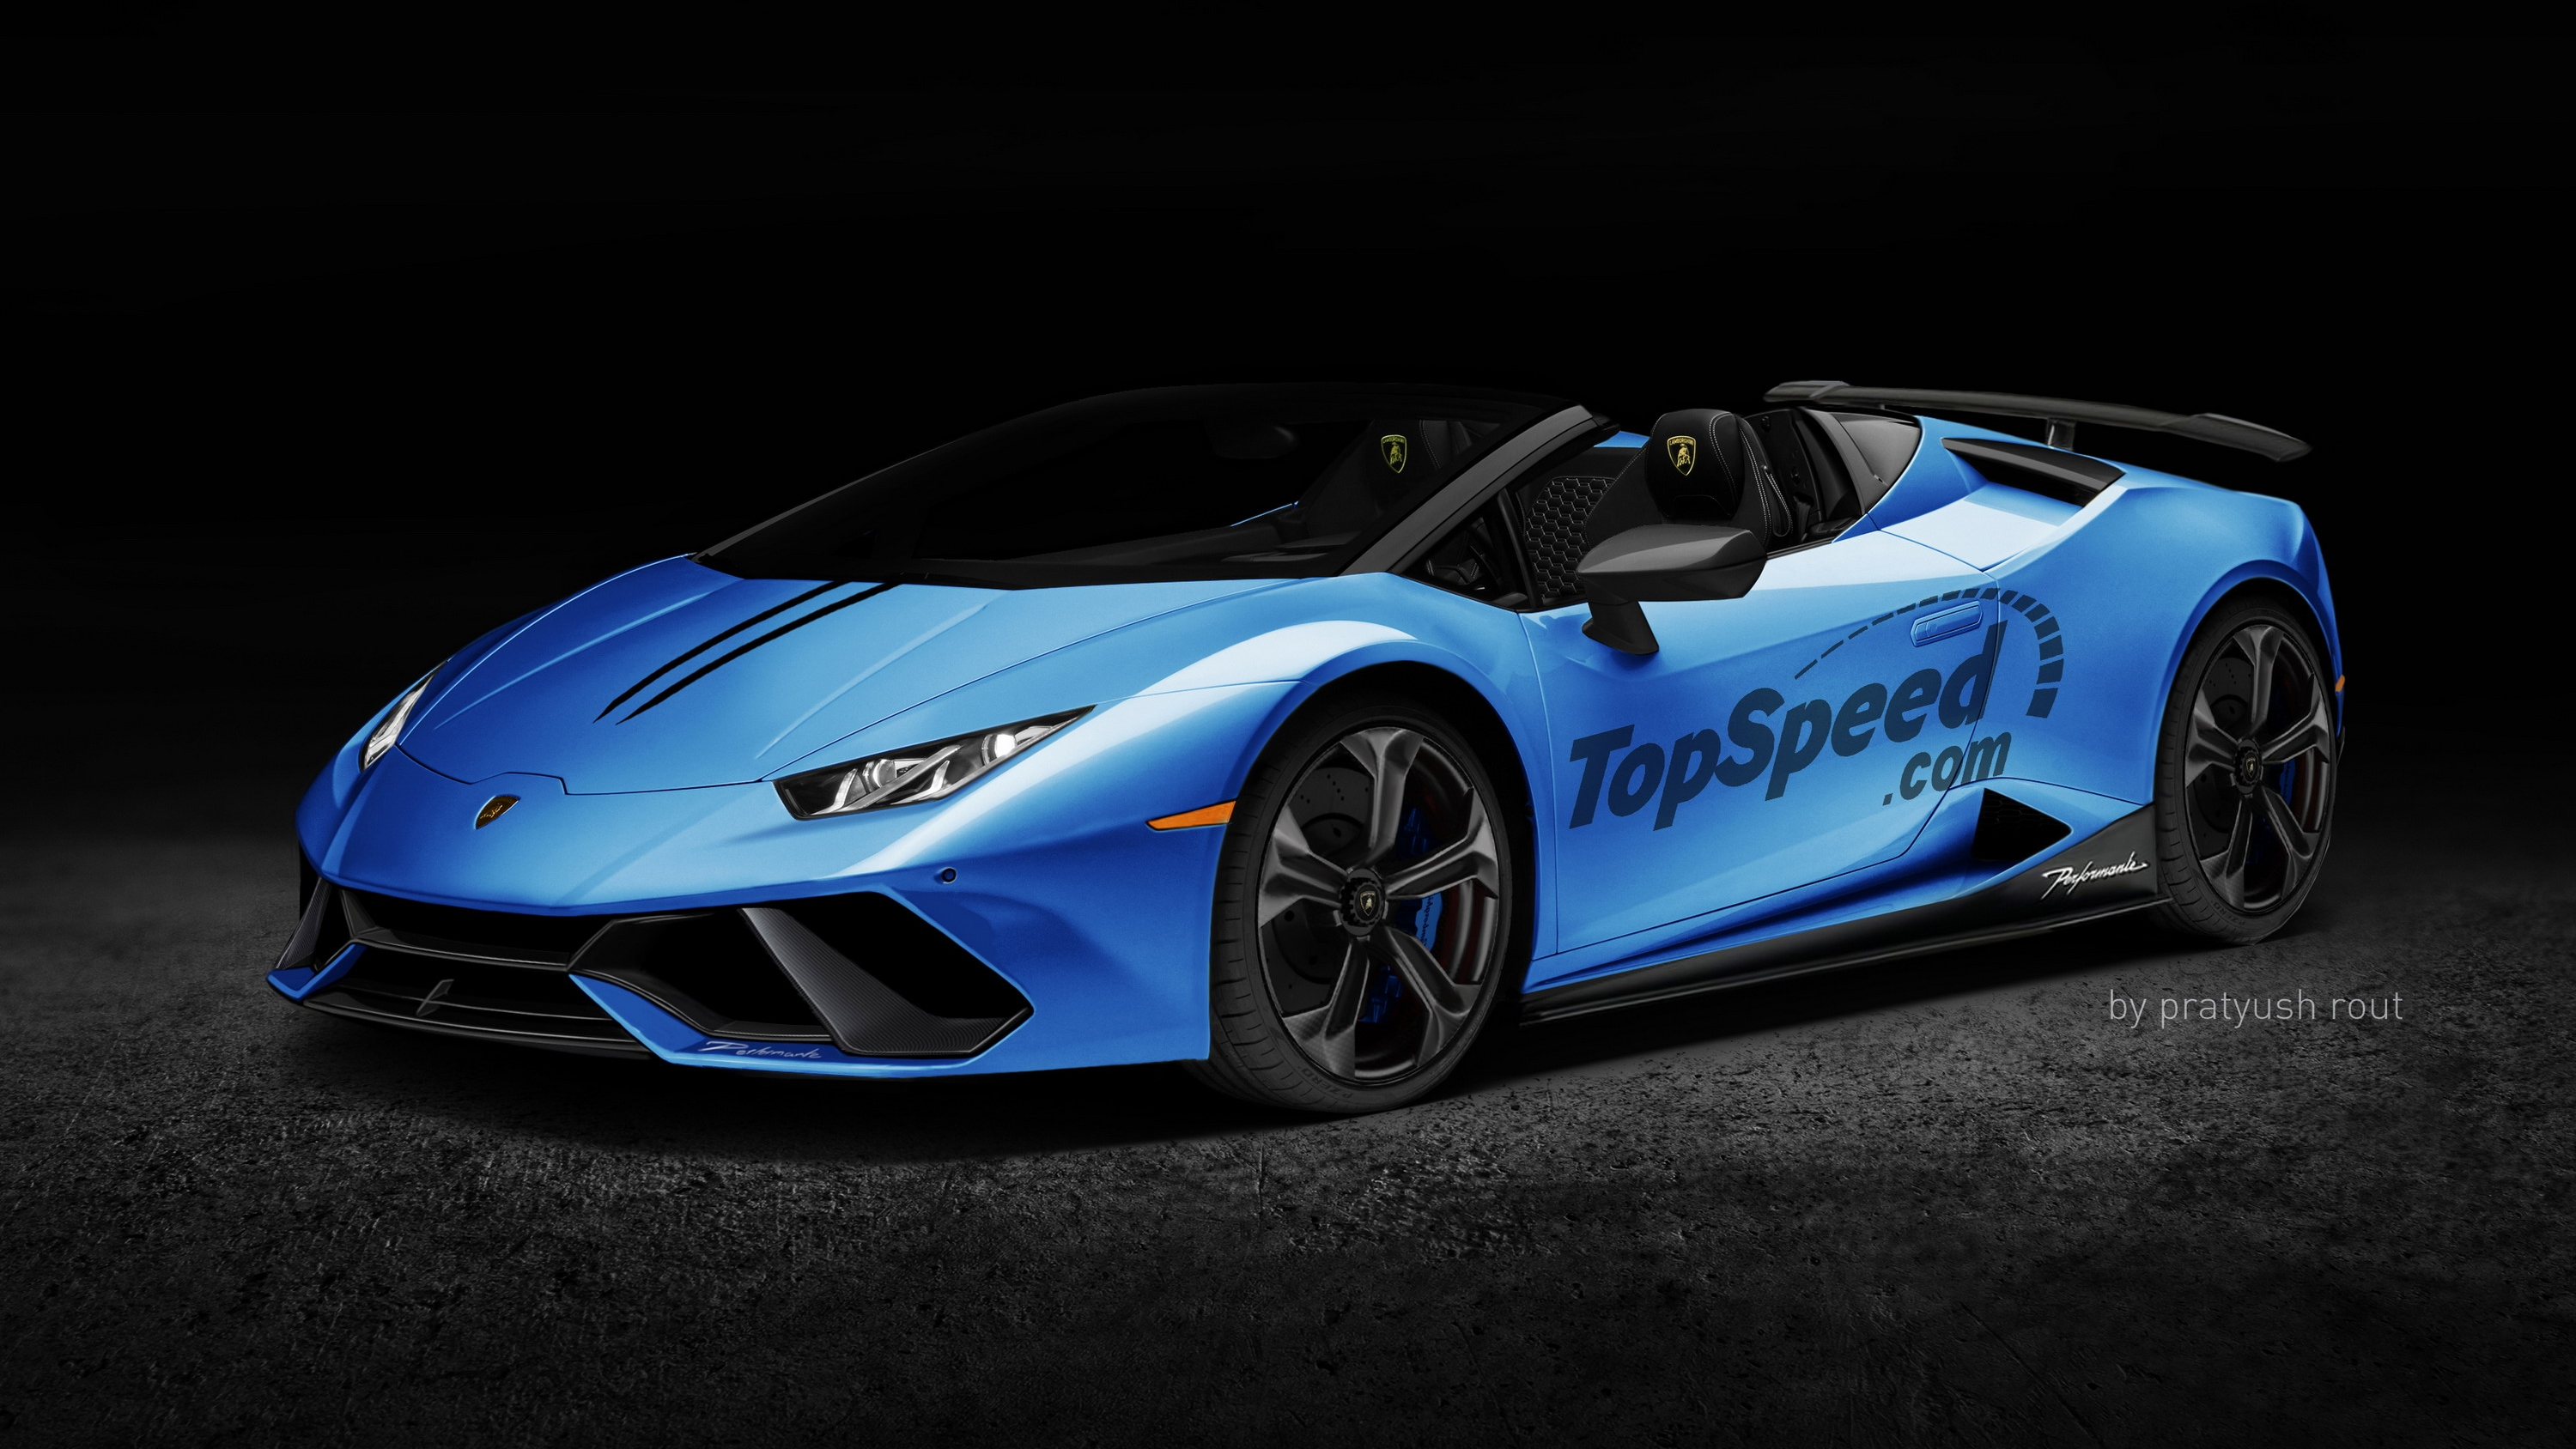 2018 lamborghini huracan performante spyder review gallery top speed. Black Bedroom Furniture Sets. Home Design Ideas